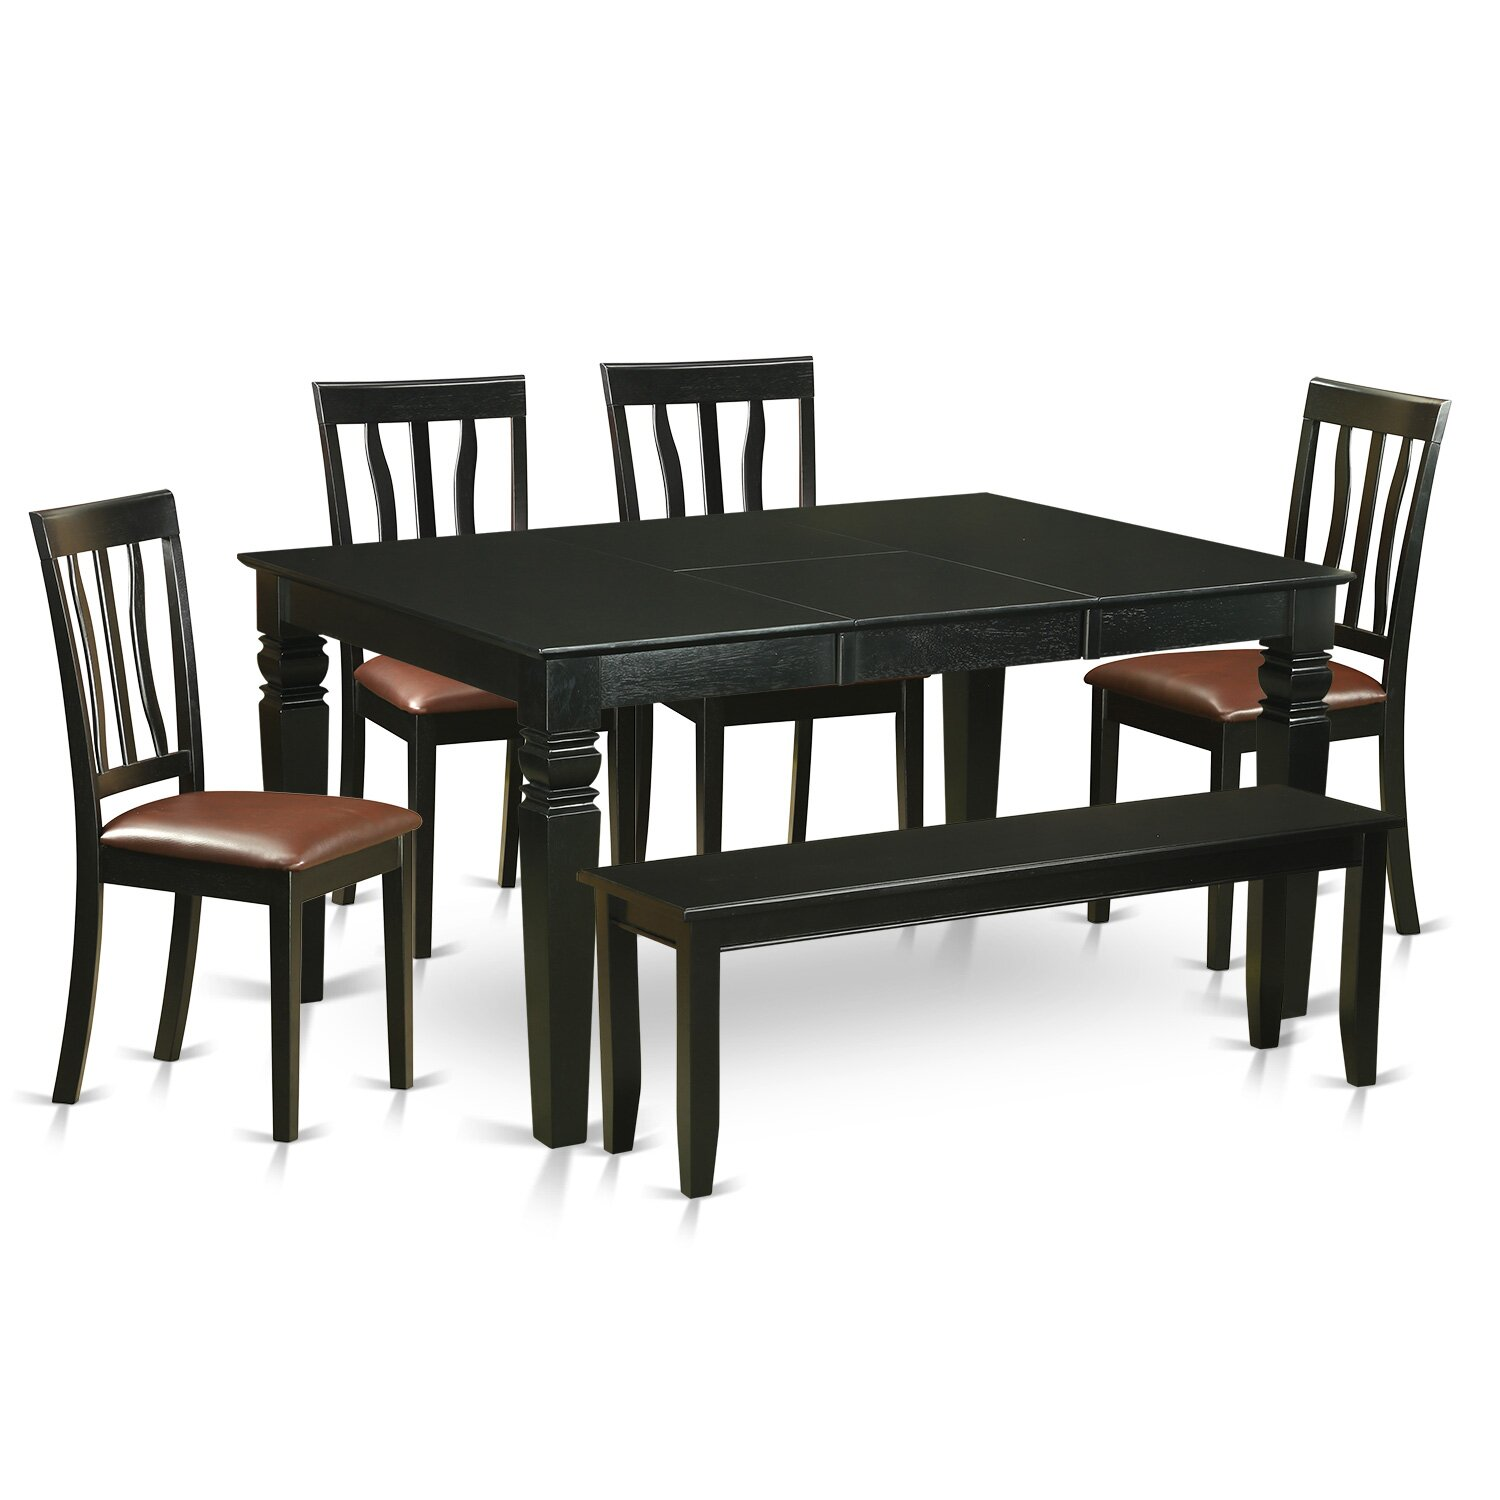 Dining sets wayfair almirah beds wardrobes for Dining room table for 4